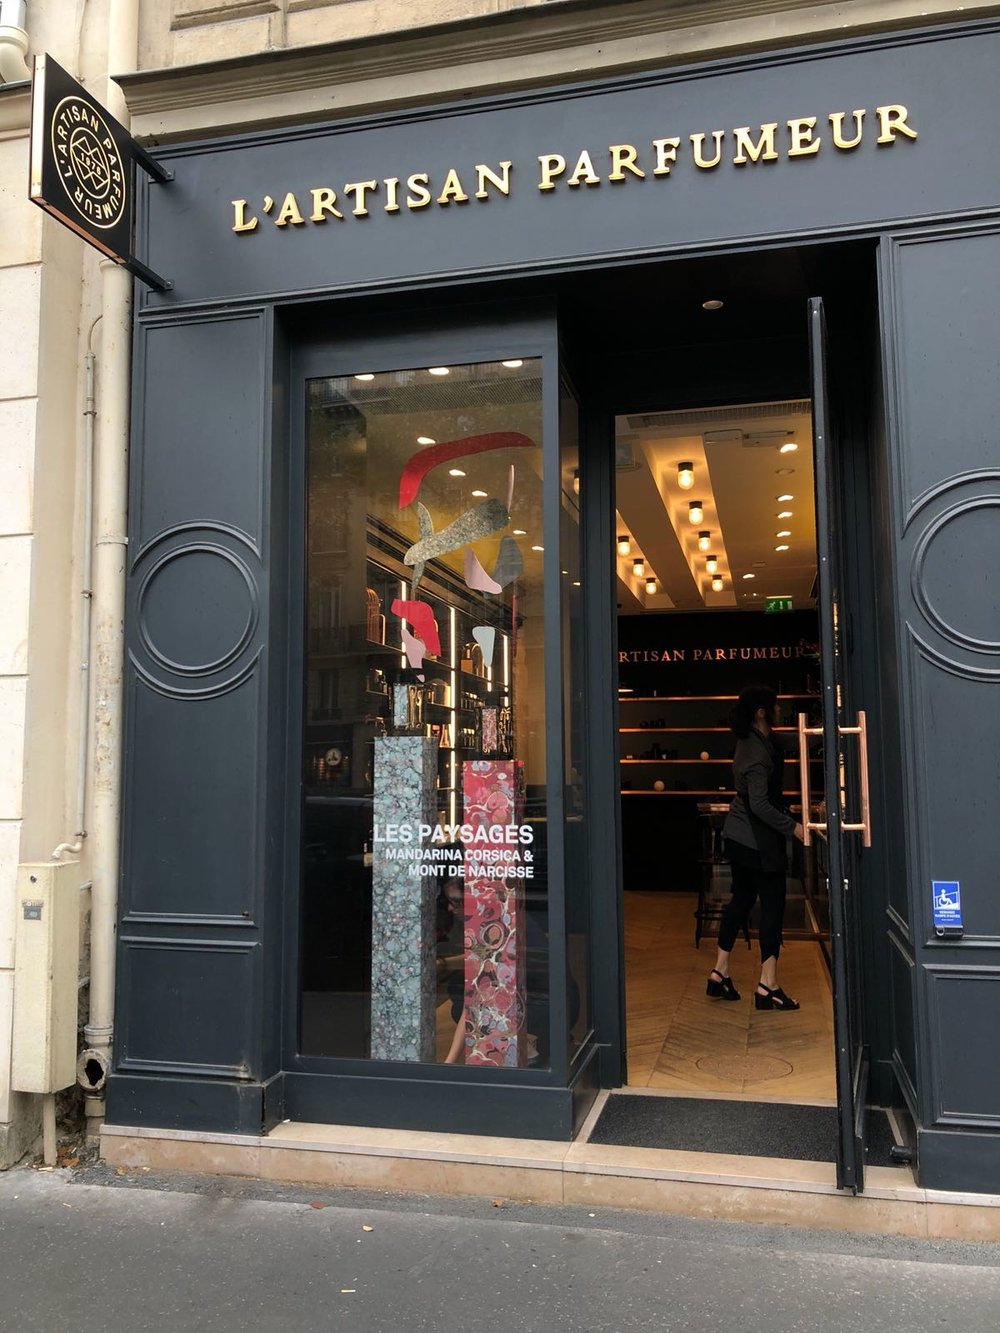 St Germain Paysages window display